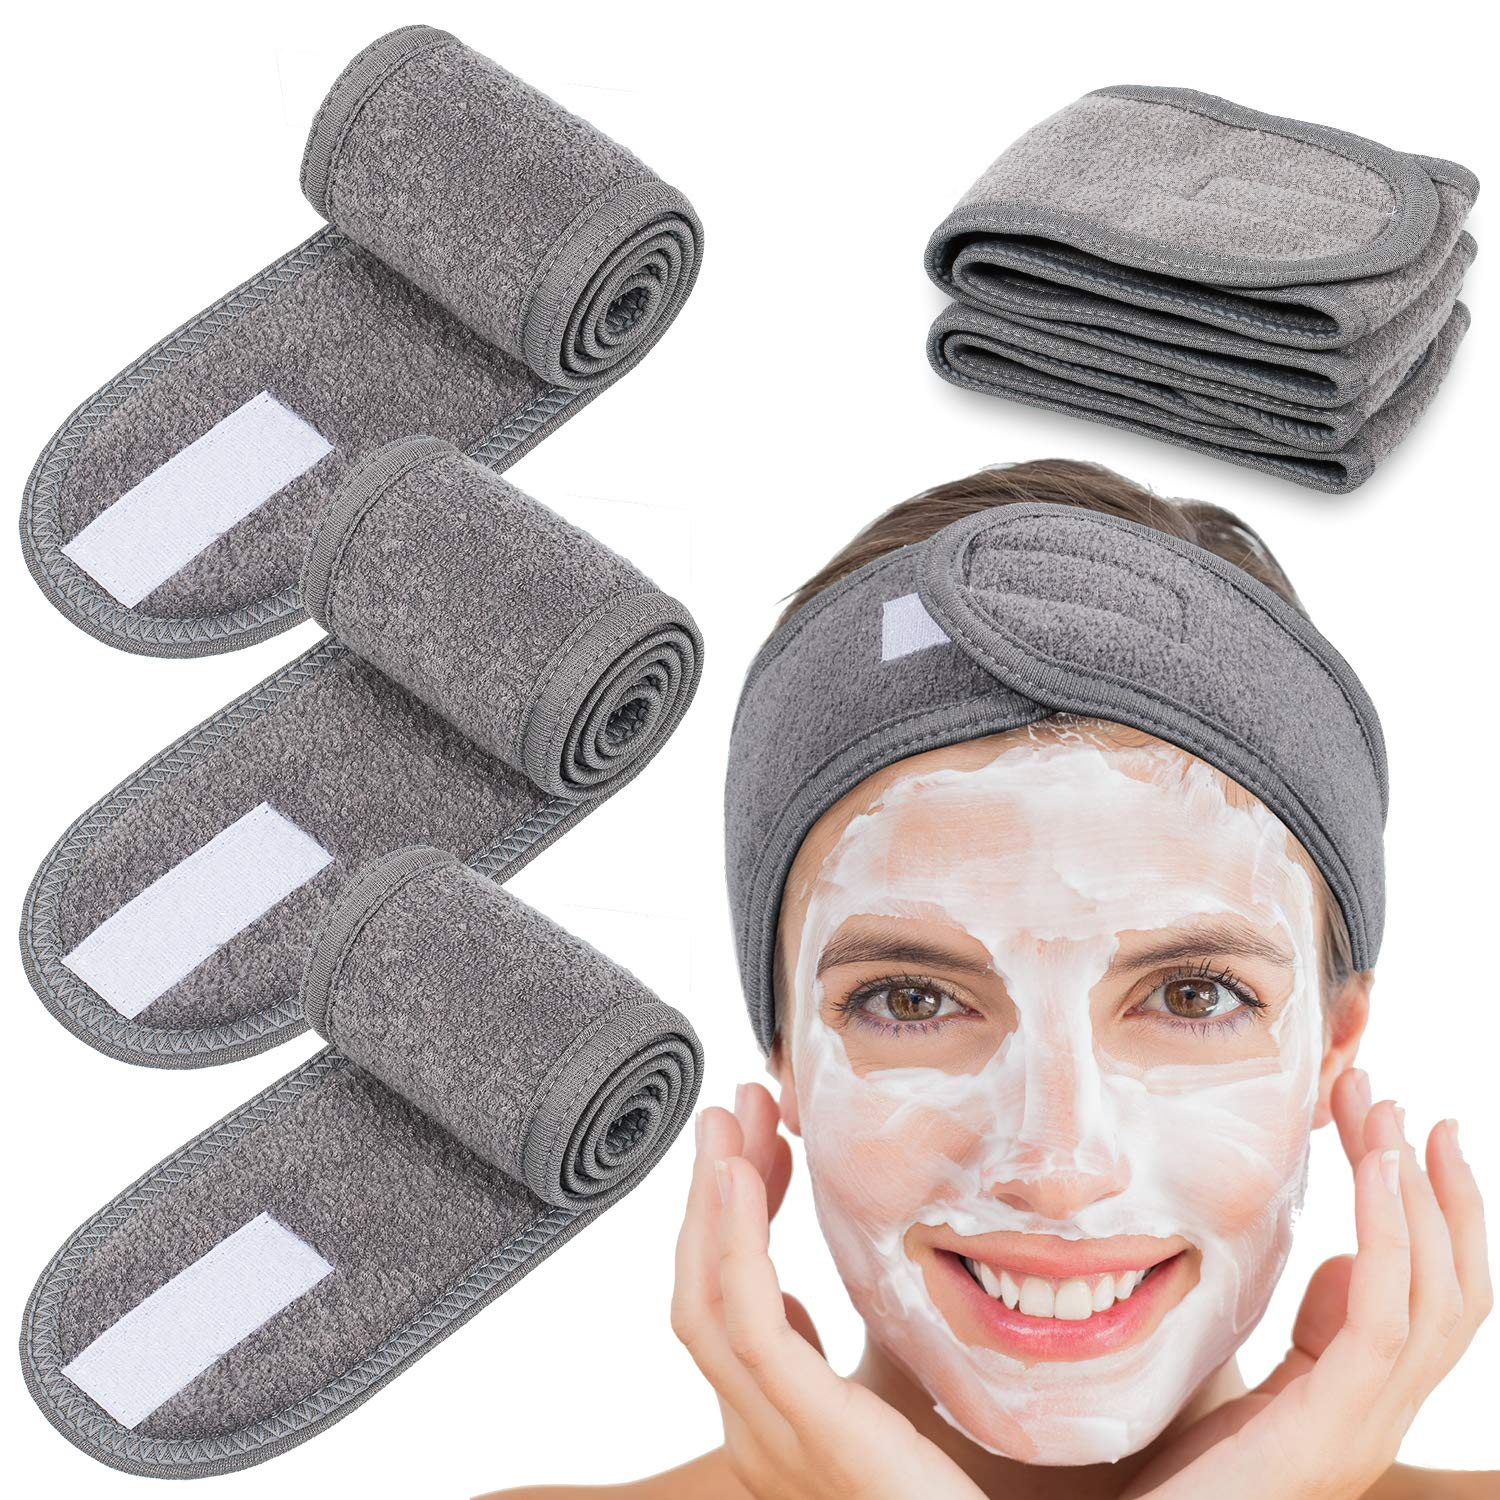 Grey deluxe microfiber spa headband